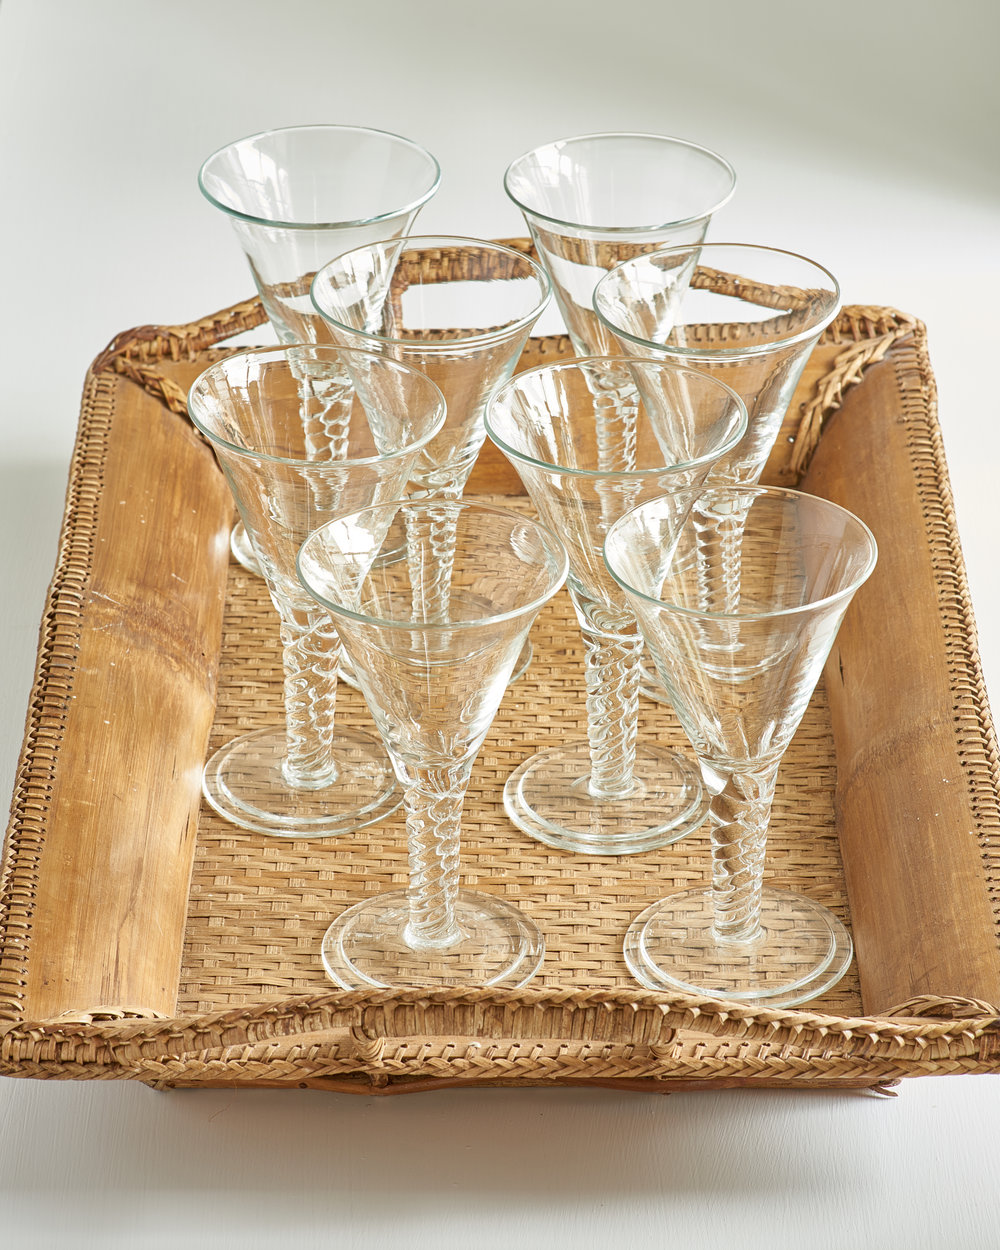 Vintage set of 8 wine glasses, $435